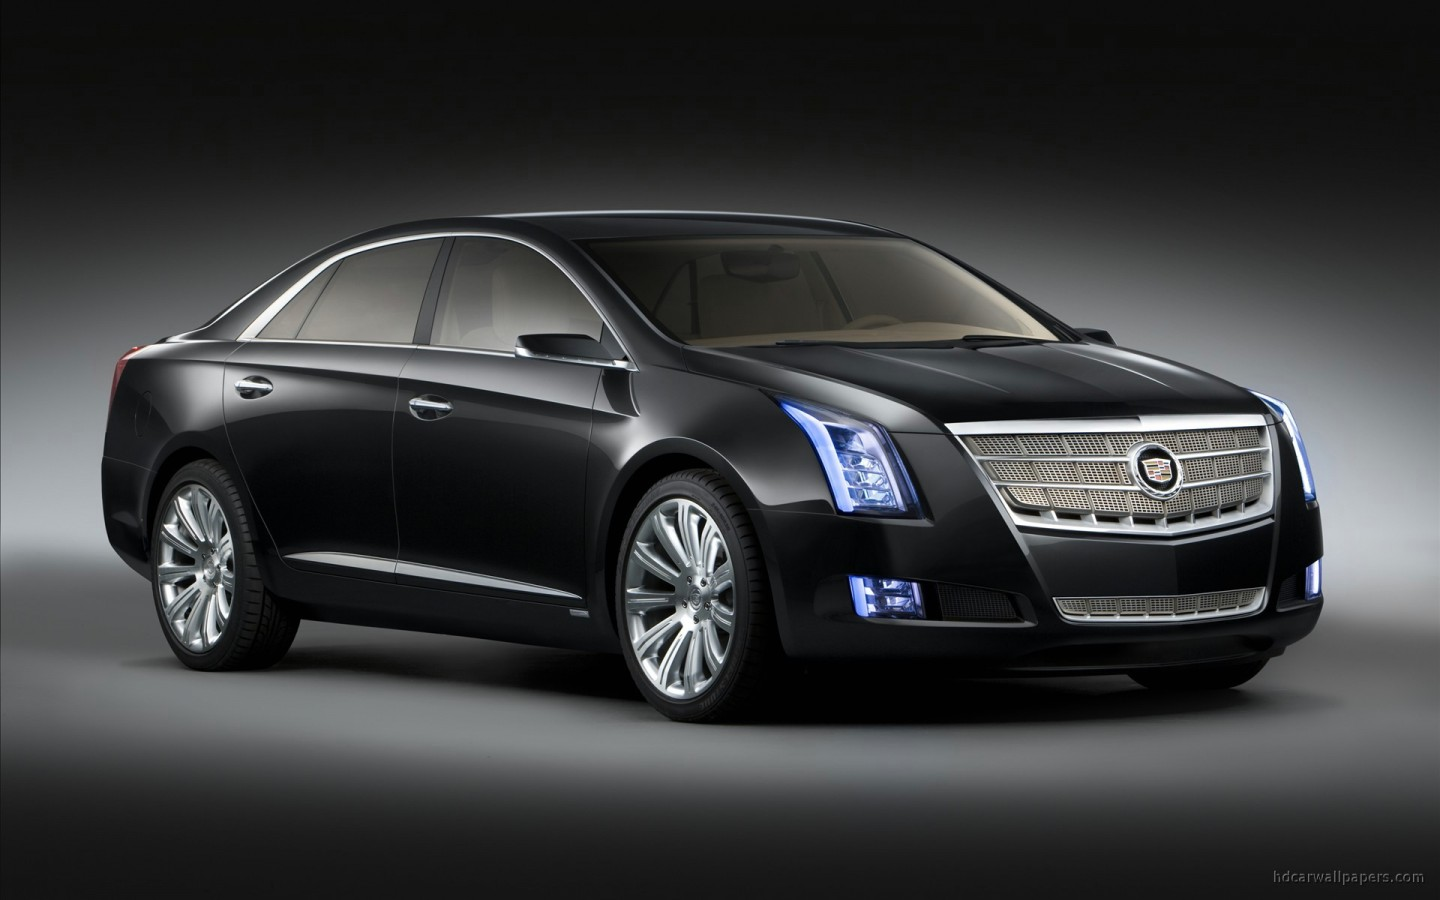 2010 cadillac xts platinum concept wallpaper hd car wallpapers. Black Bedroom Furniture Sets. Home Design Ideas